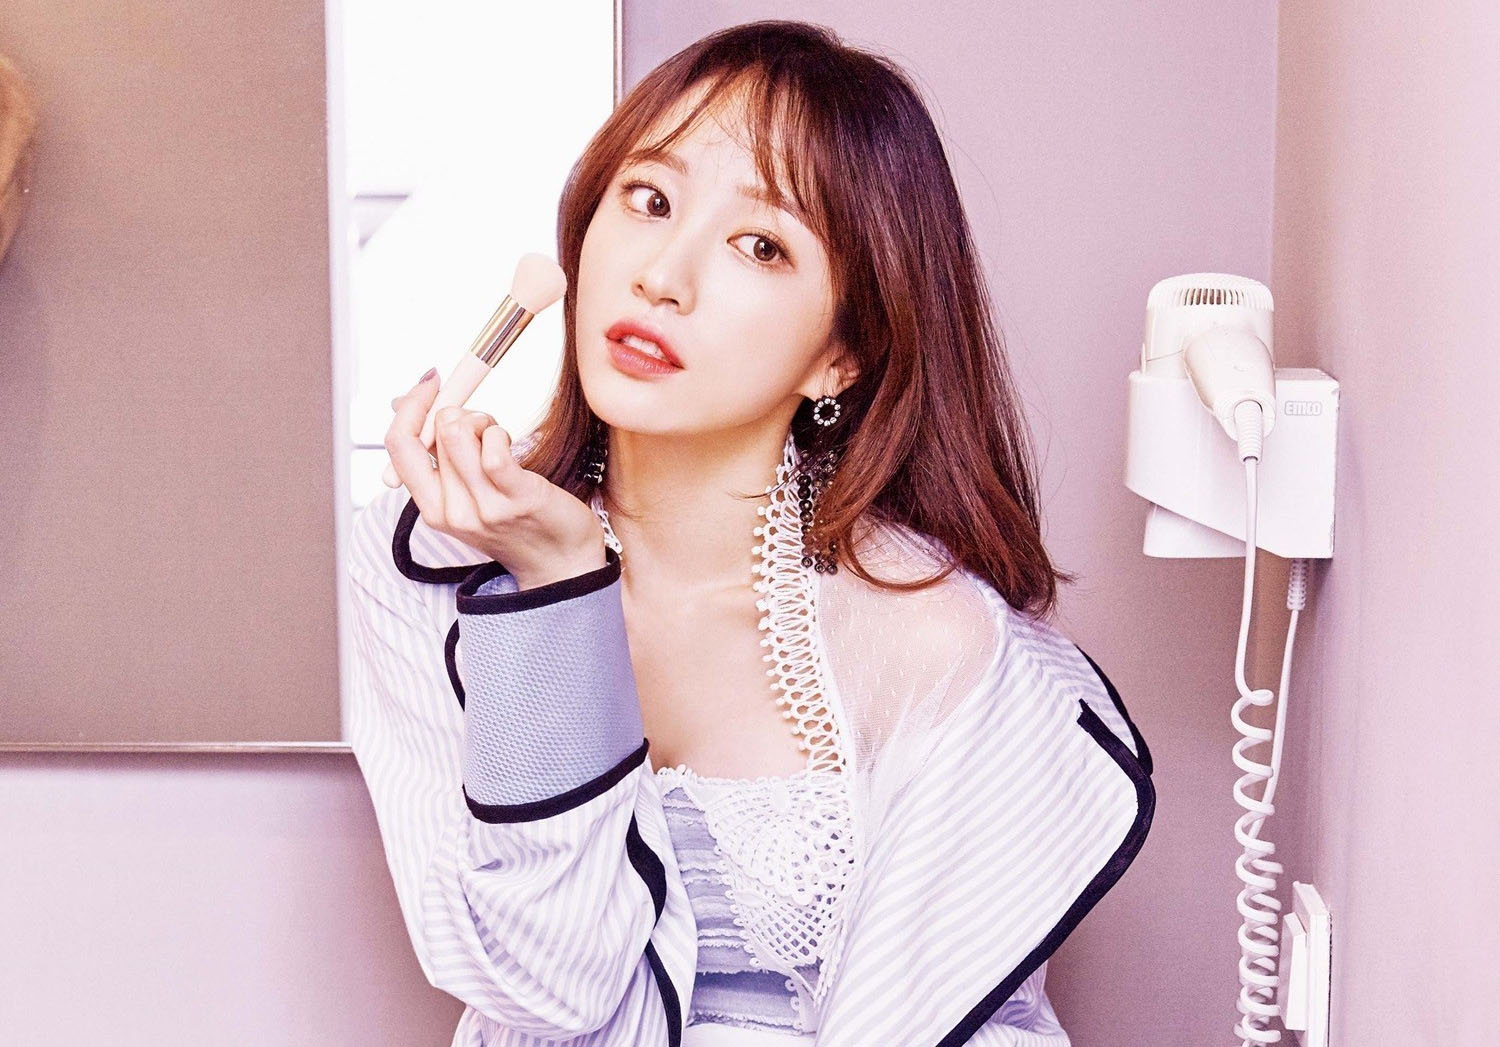 Exid S Hani On Her Own Dancing And The Fancam That Made Her A Viral